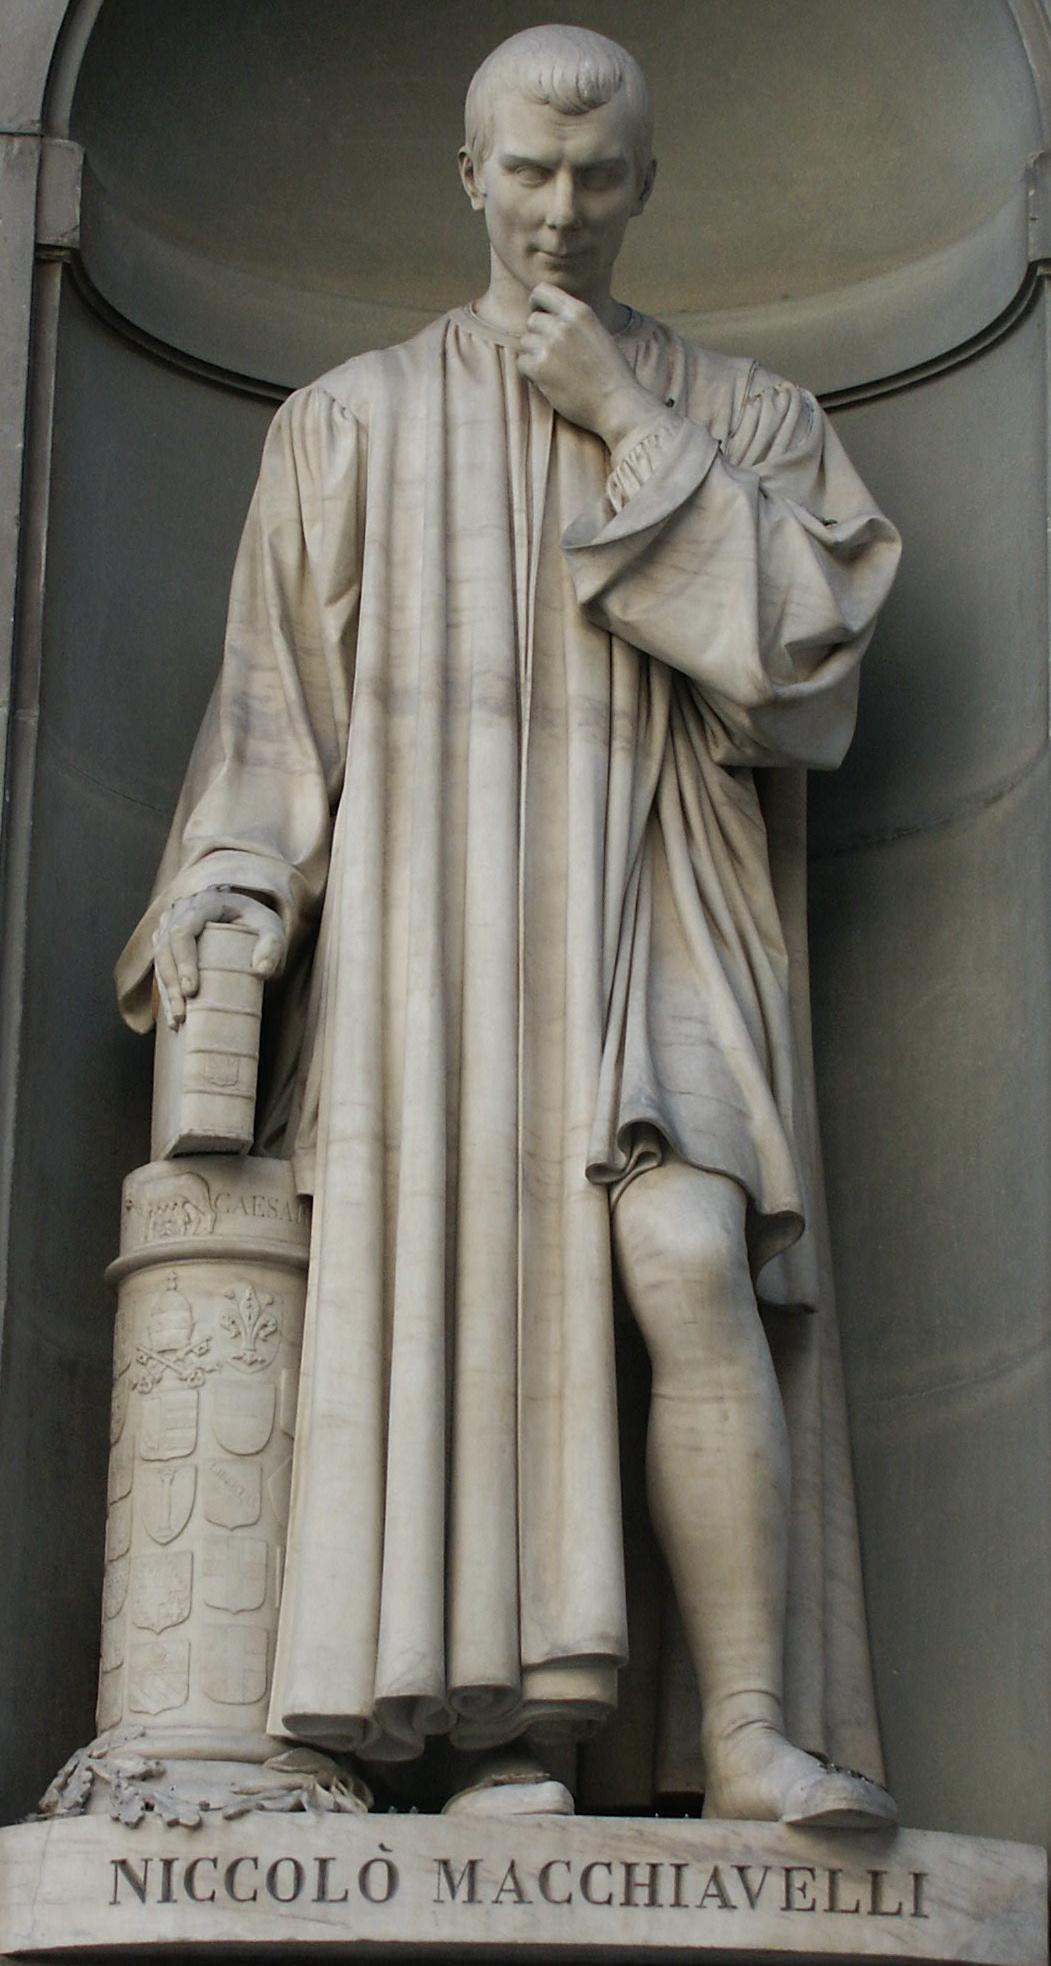 http://it.wikipedia.org/wiki/Niccol%C3%B2_Machiavelli